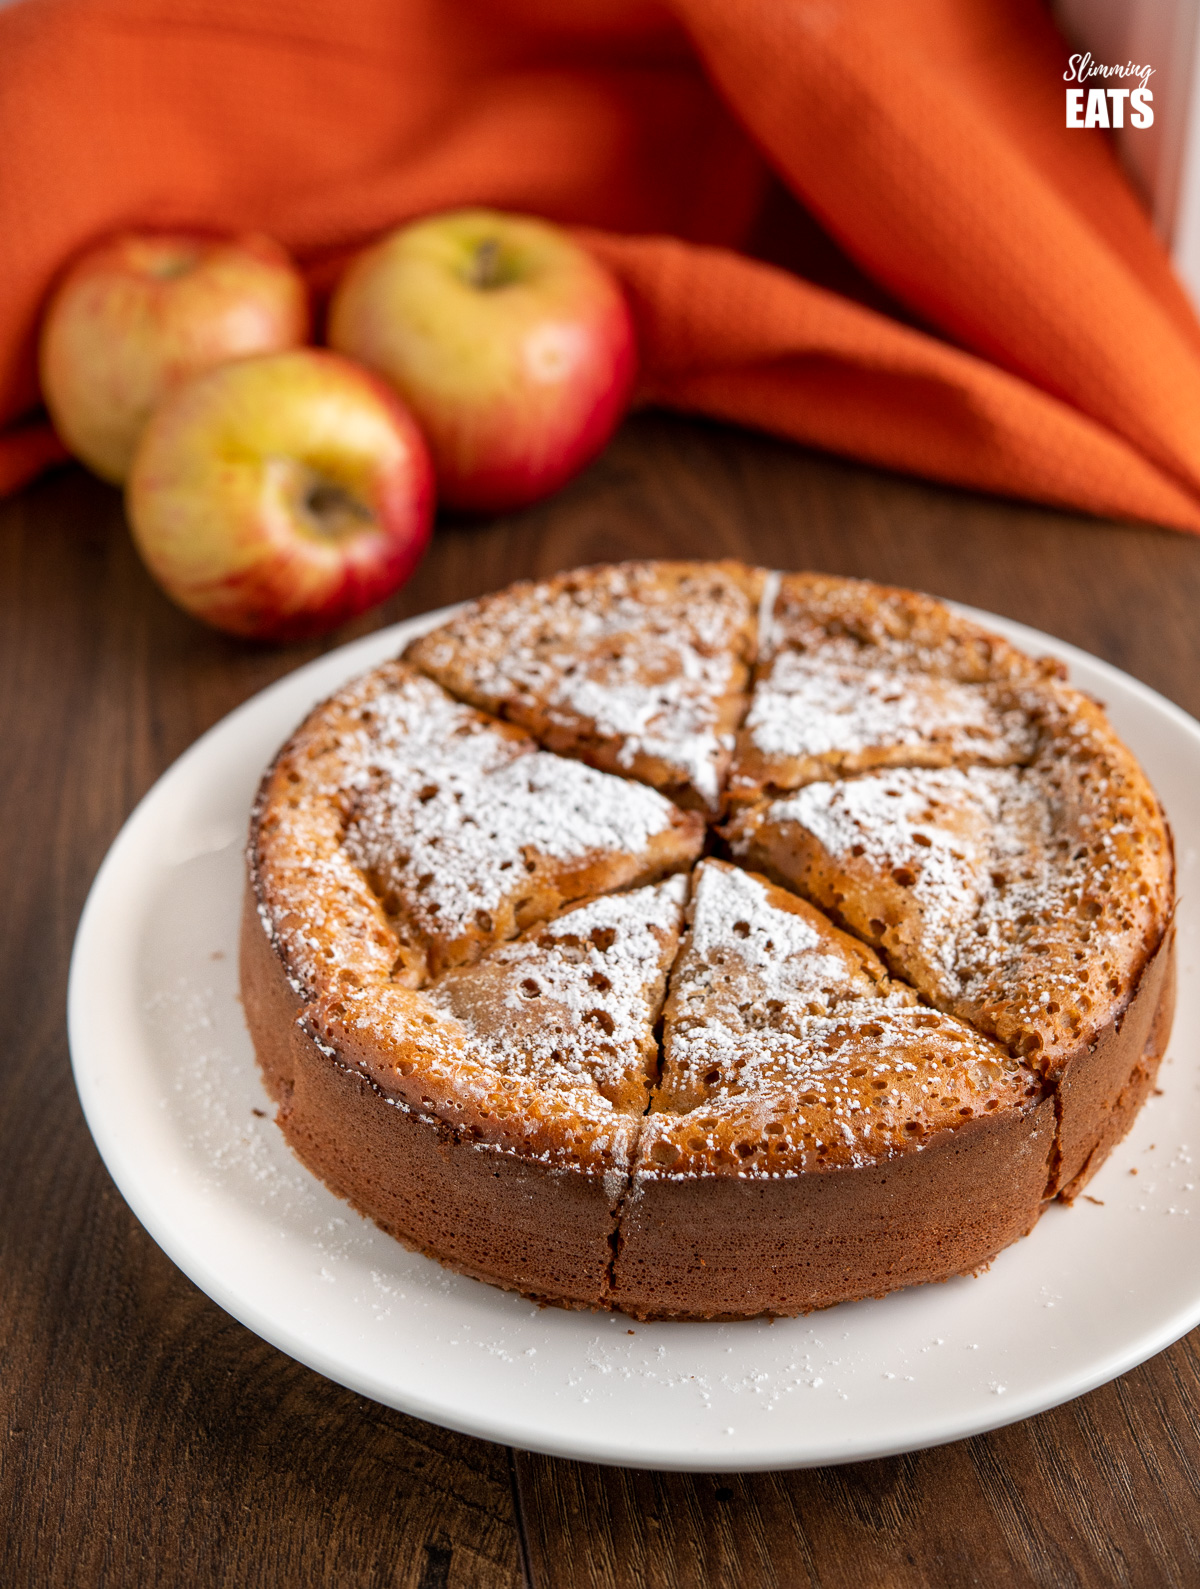 apple sultana cake on white plate with scattered apples and orange cloth in background